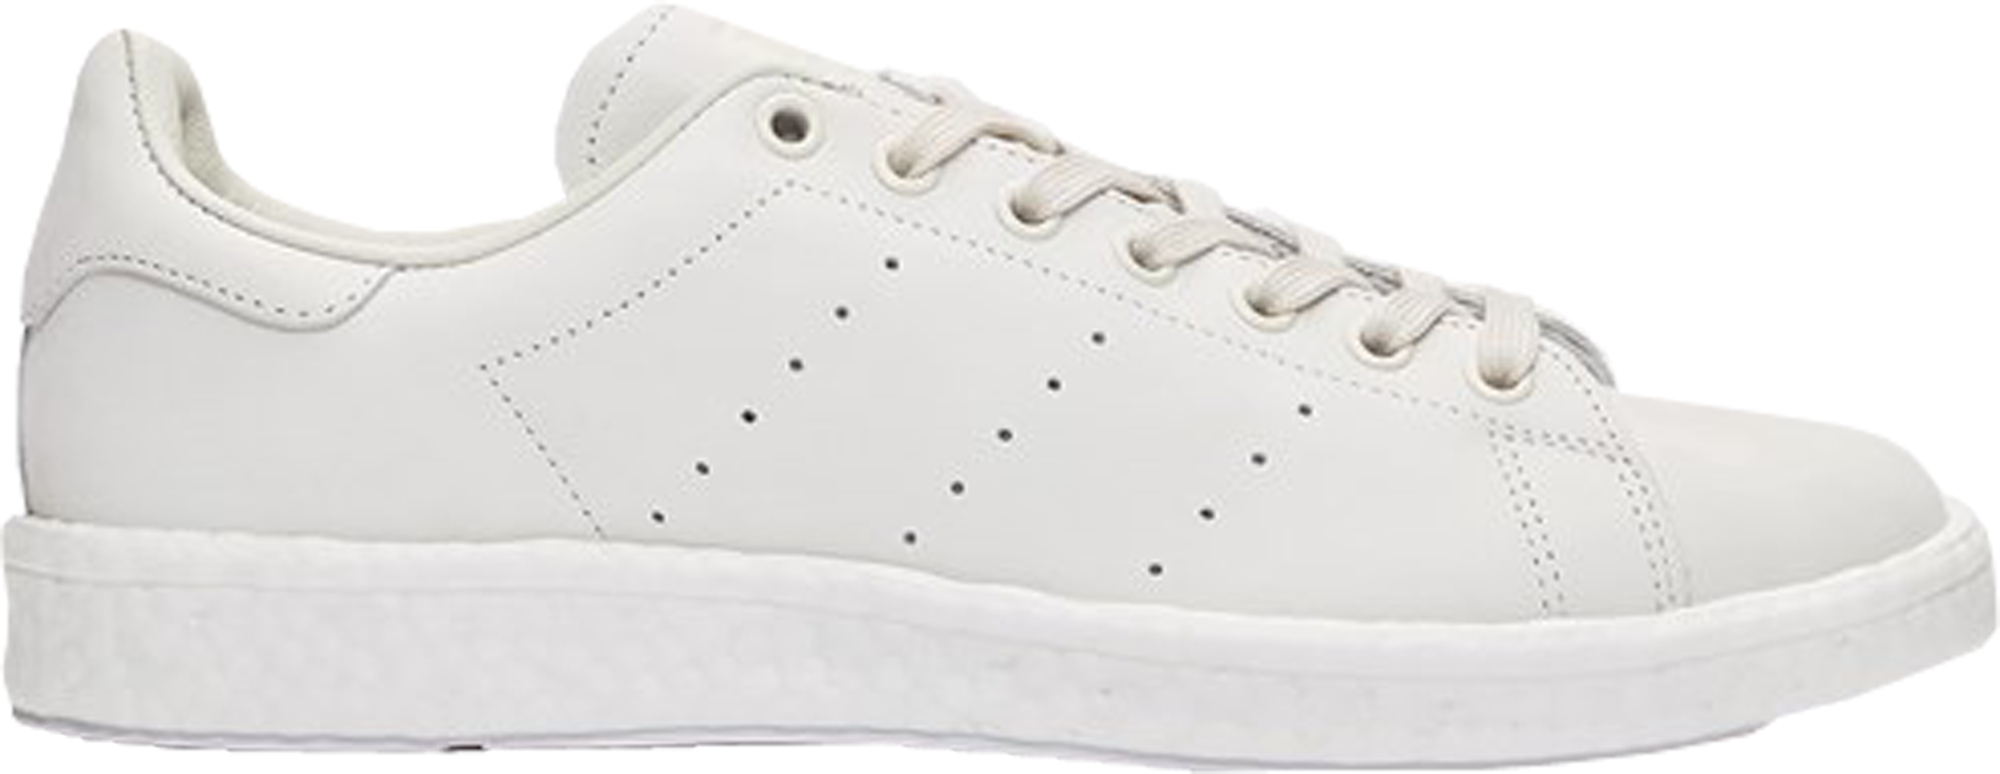 adidas Stan Smith Boost SNS Shades of White V2